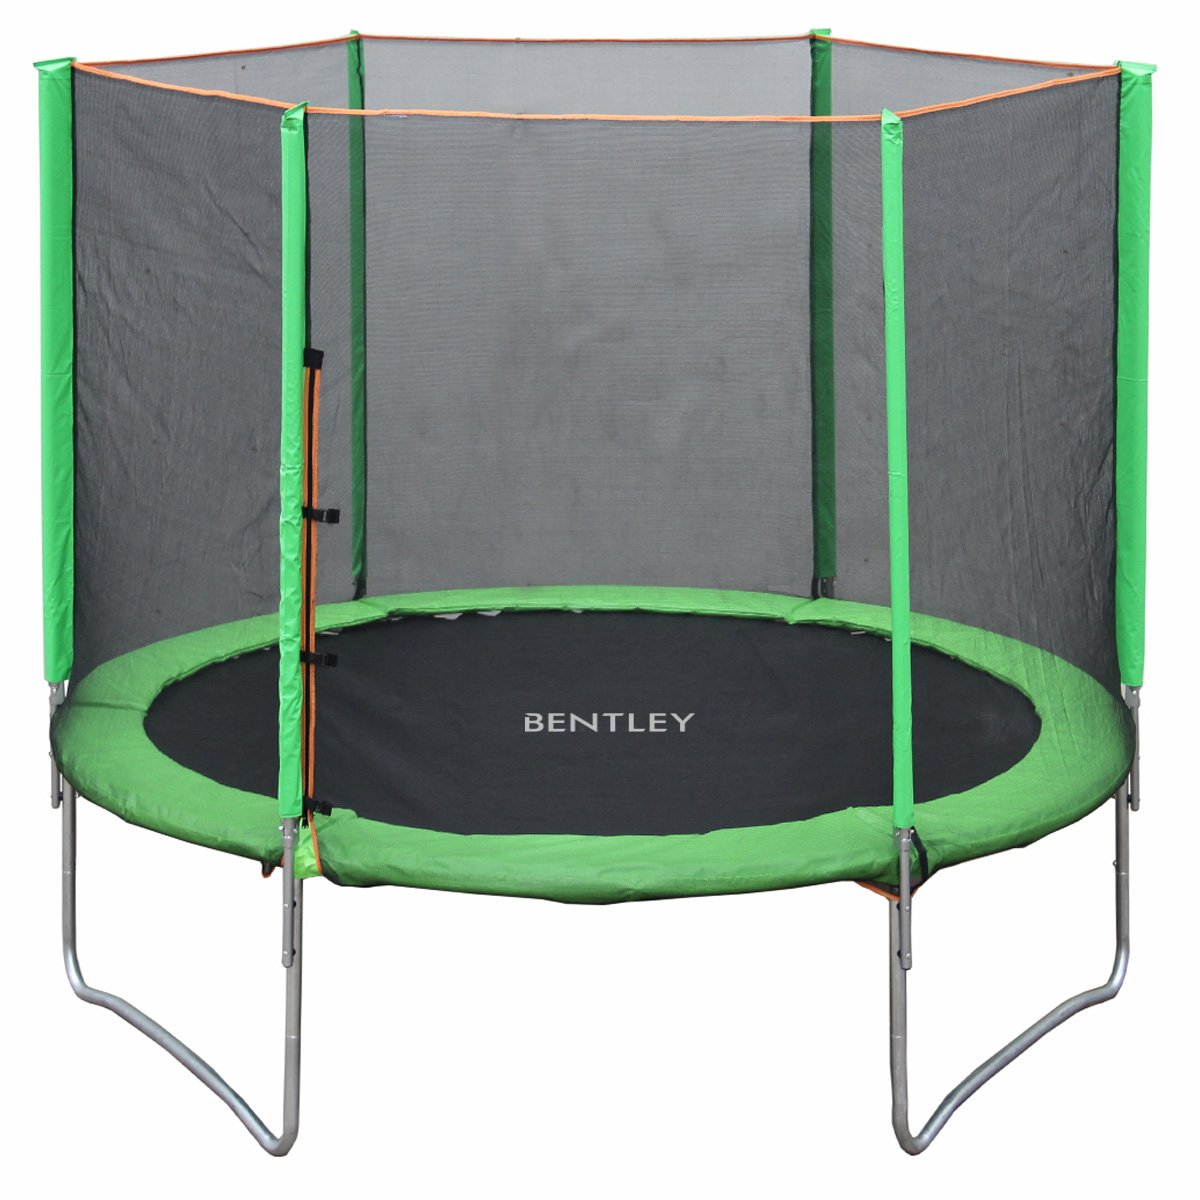 Bentley Kids - Kinder Outdoor-Trampolin mit Sicherheitsnetz - Ø 3 m